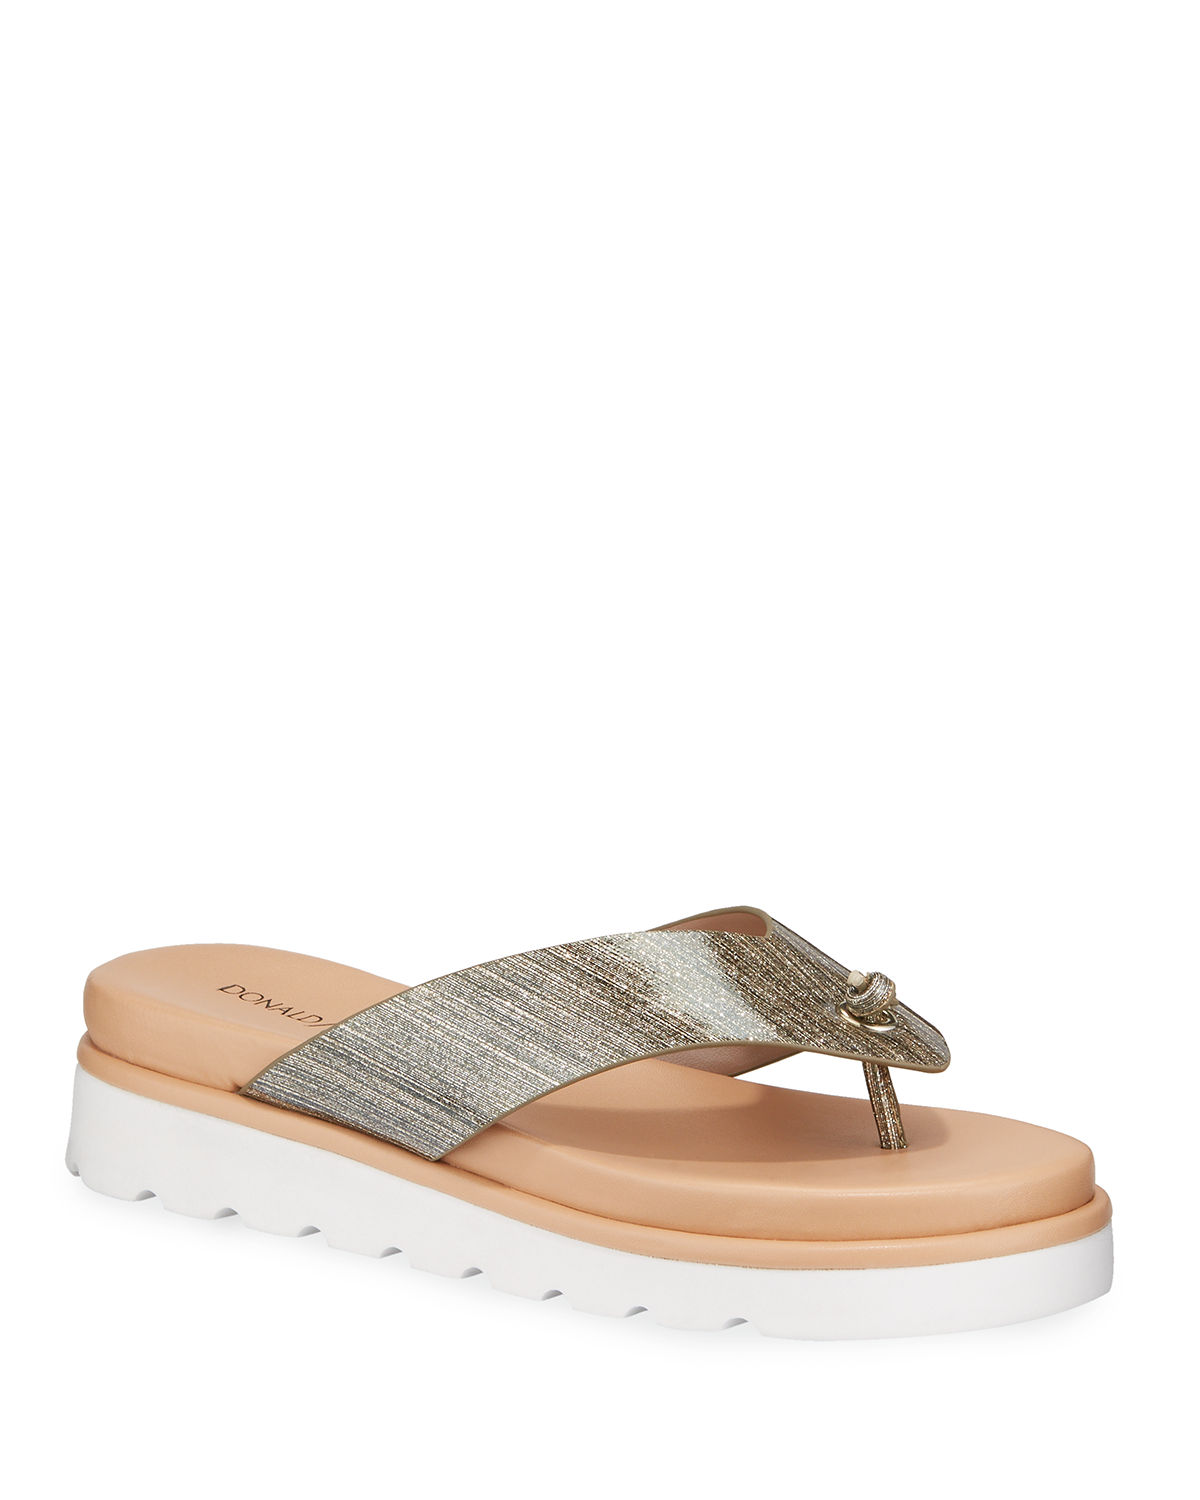 Leanne Glittered Patent Thong Sandals